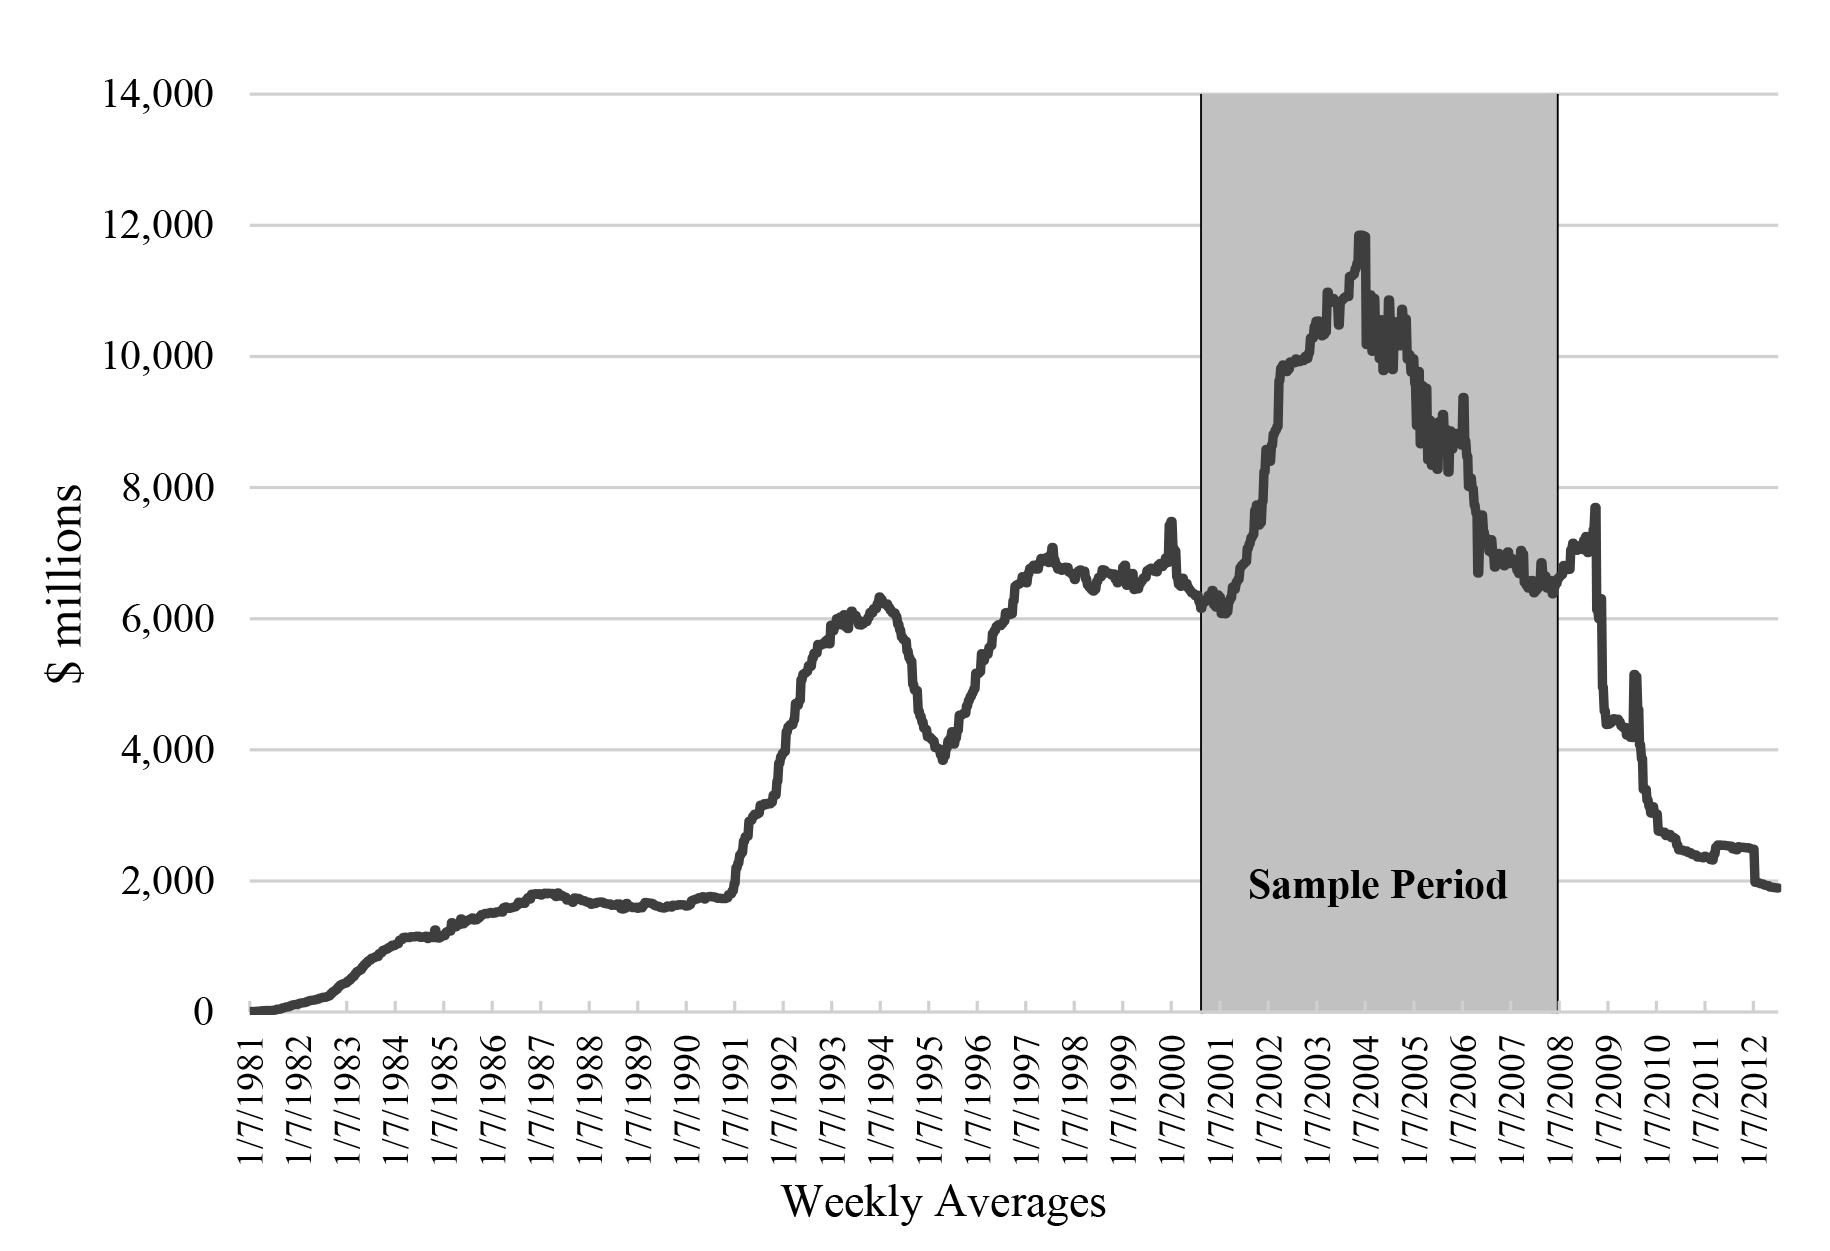 Figure 1: Aggregate Clearing Balances Weekly Averages from January 7, 1981, to July 11, 2012. See accessible link for data description.